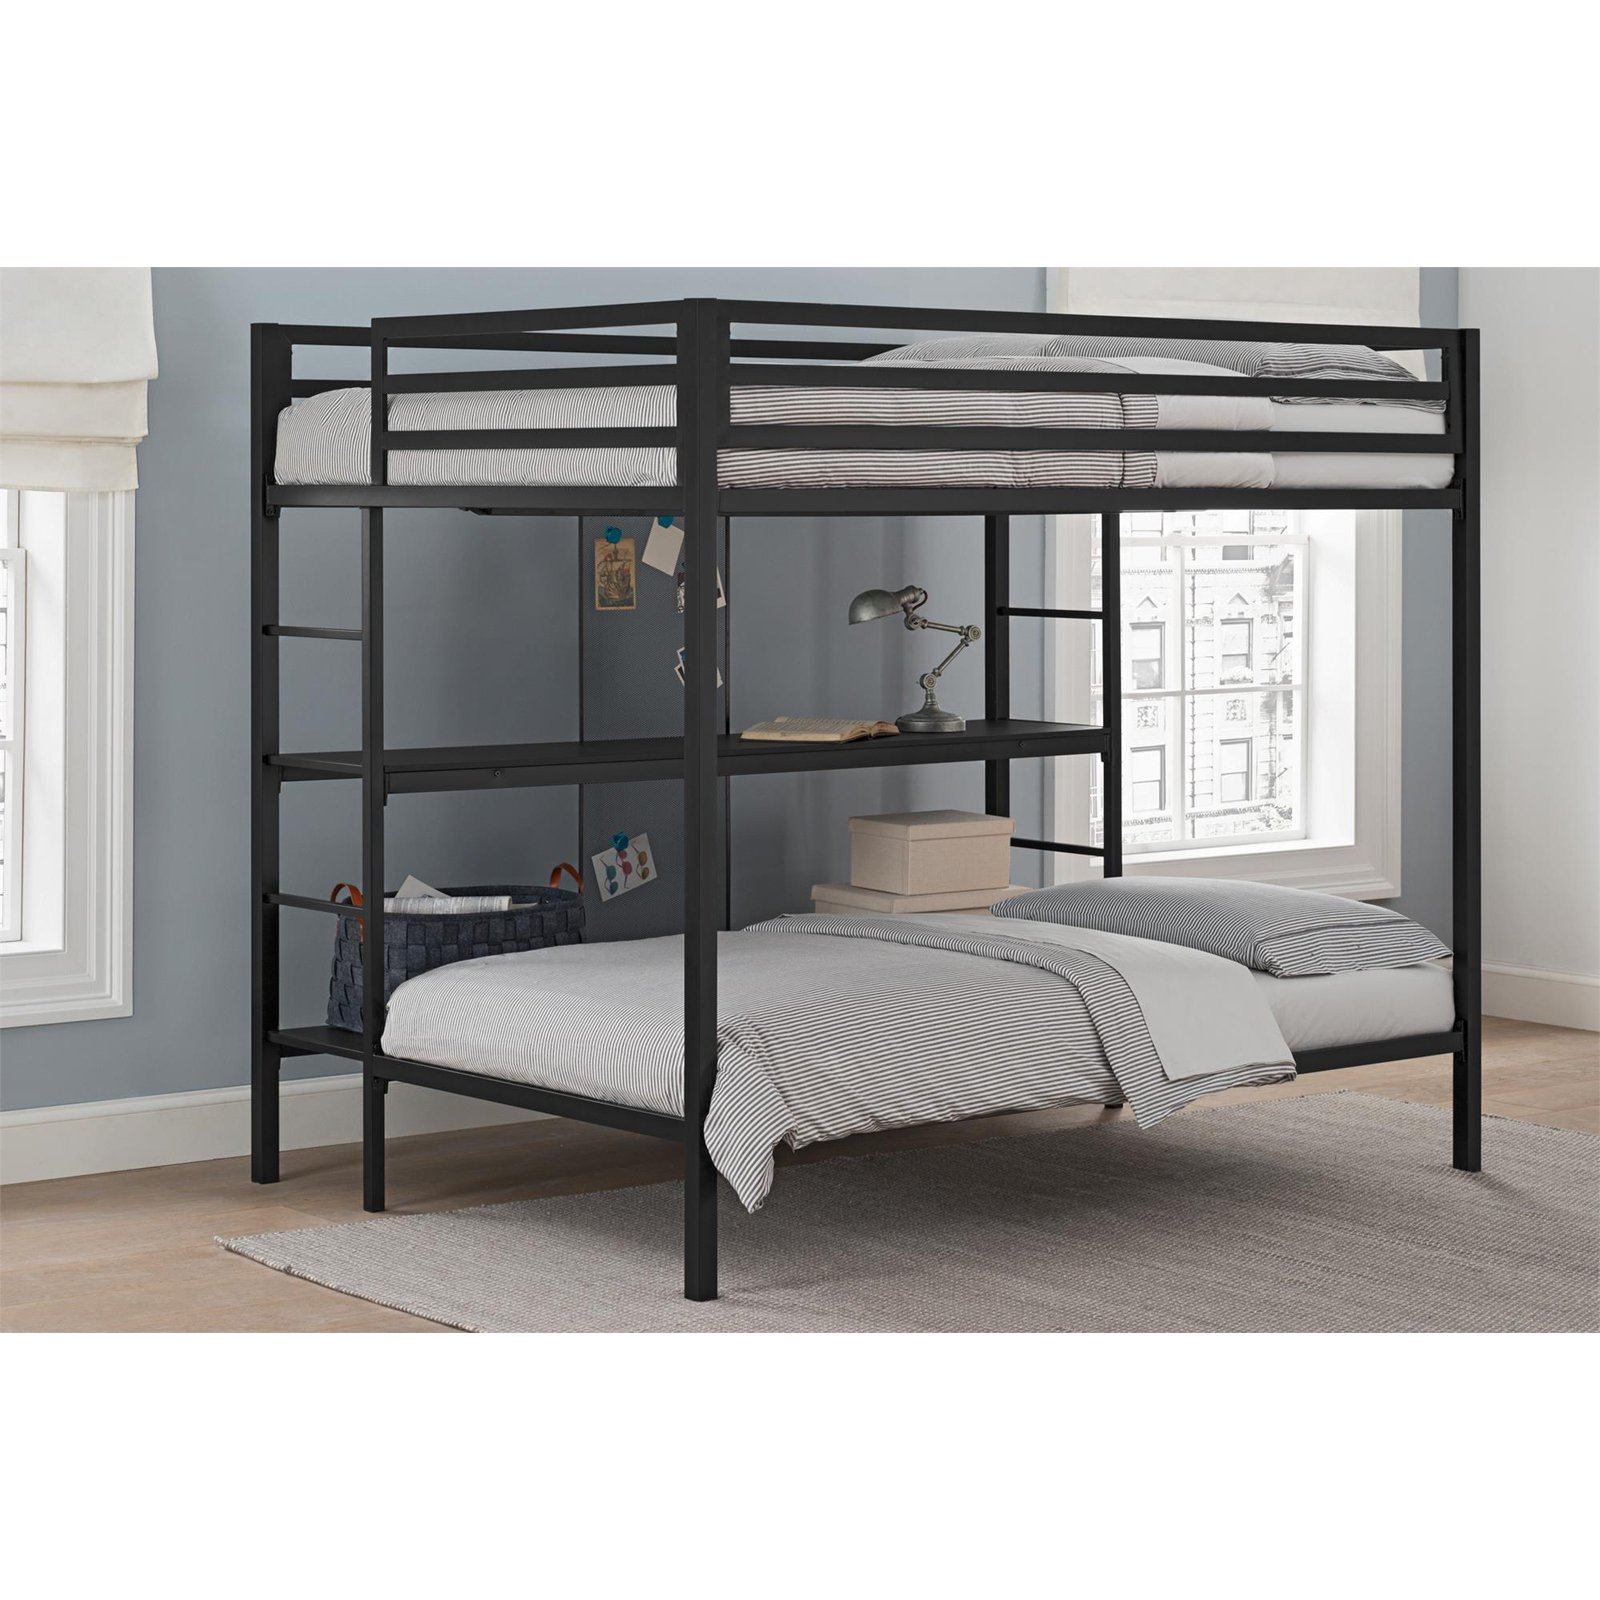 Dorel DHP Ultimate Full Over Twin Metal Bunk Bed with Storage, Black